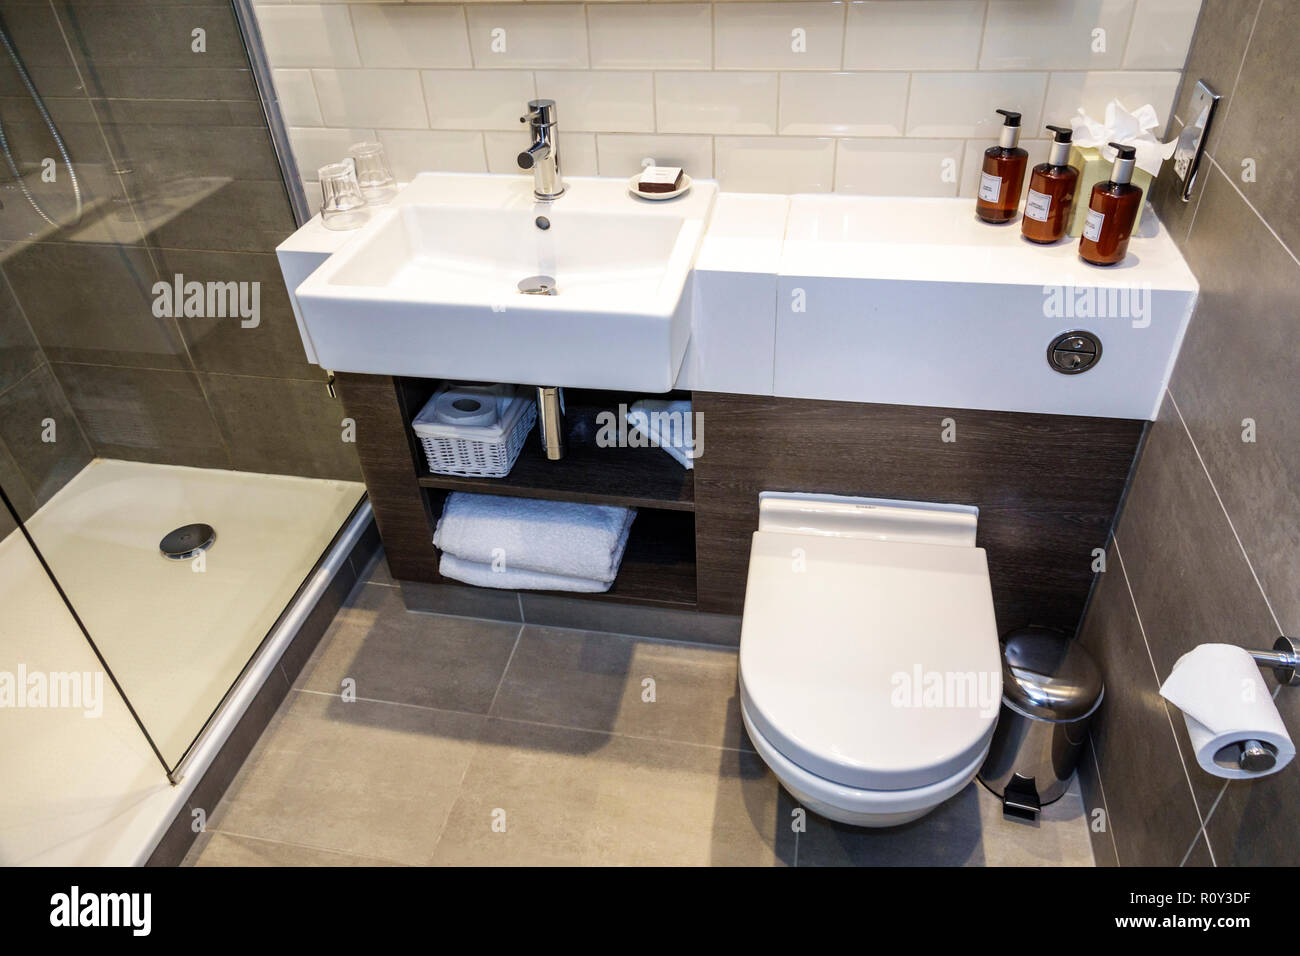 London England United Kingdom Great Britain Lambeth Staybridge Suites London Vauxhall hotel guest bathroom vanity sink toilet loo shower - Stock Image